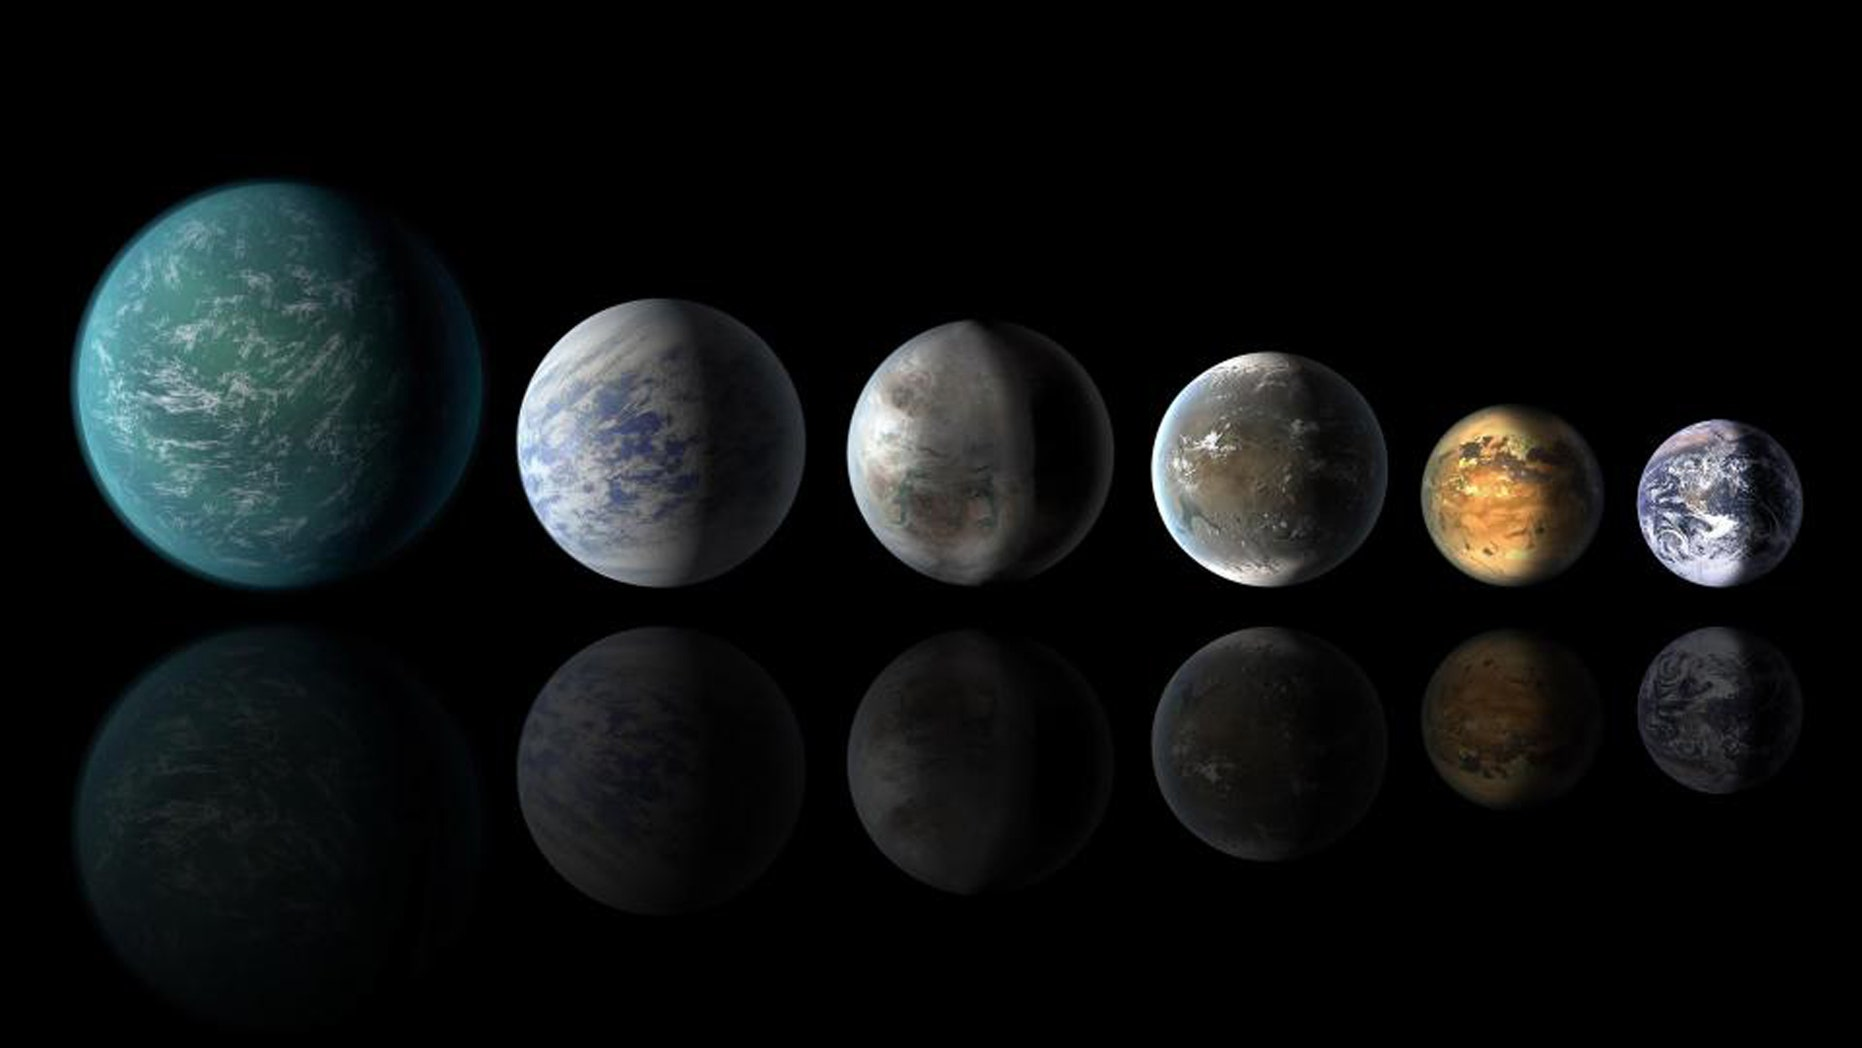 This artist's conception of a planetary lineup shows habitable-zone planets with similarities to Earth: from left, Kepler-22b, Kepler-69c, the just announced Kepler-452b, Kepler-62f and Kepler-186f. Last in line is Earth itself (NASA)